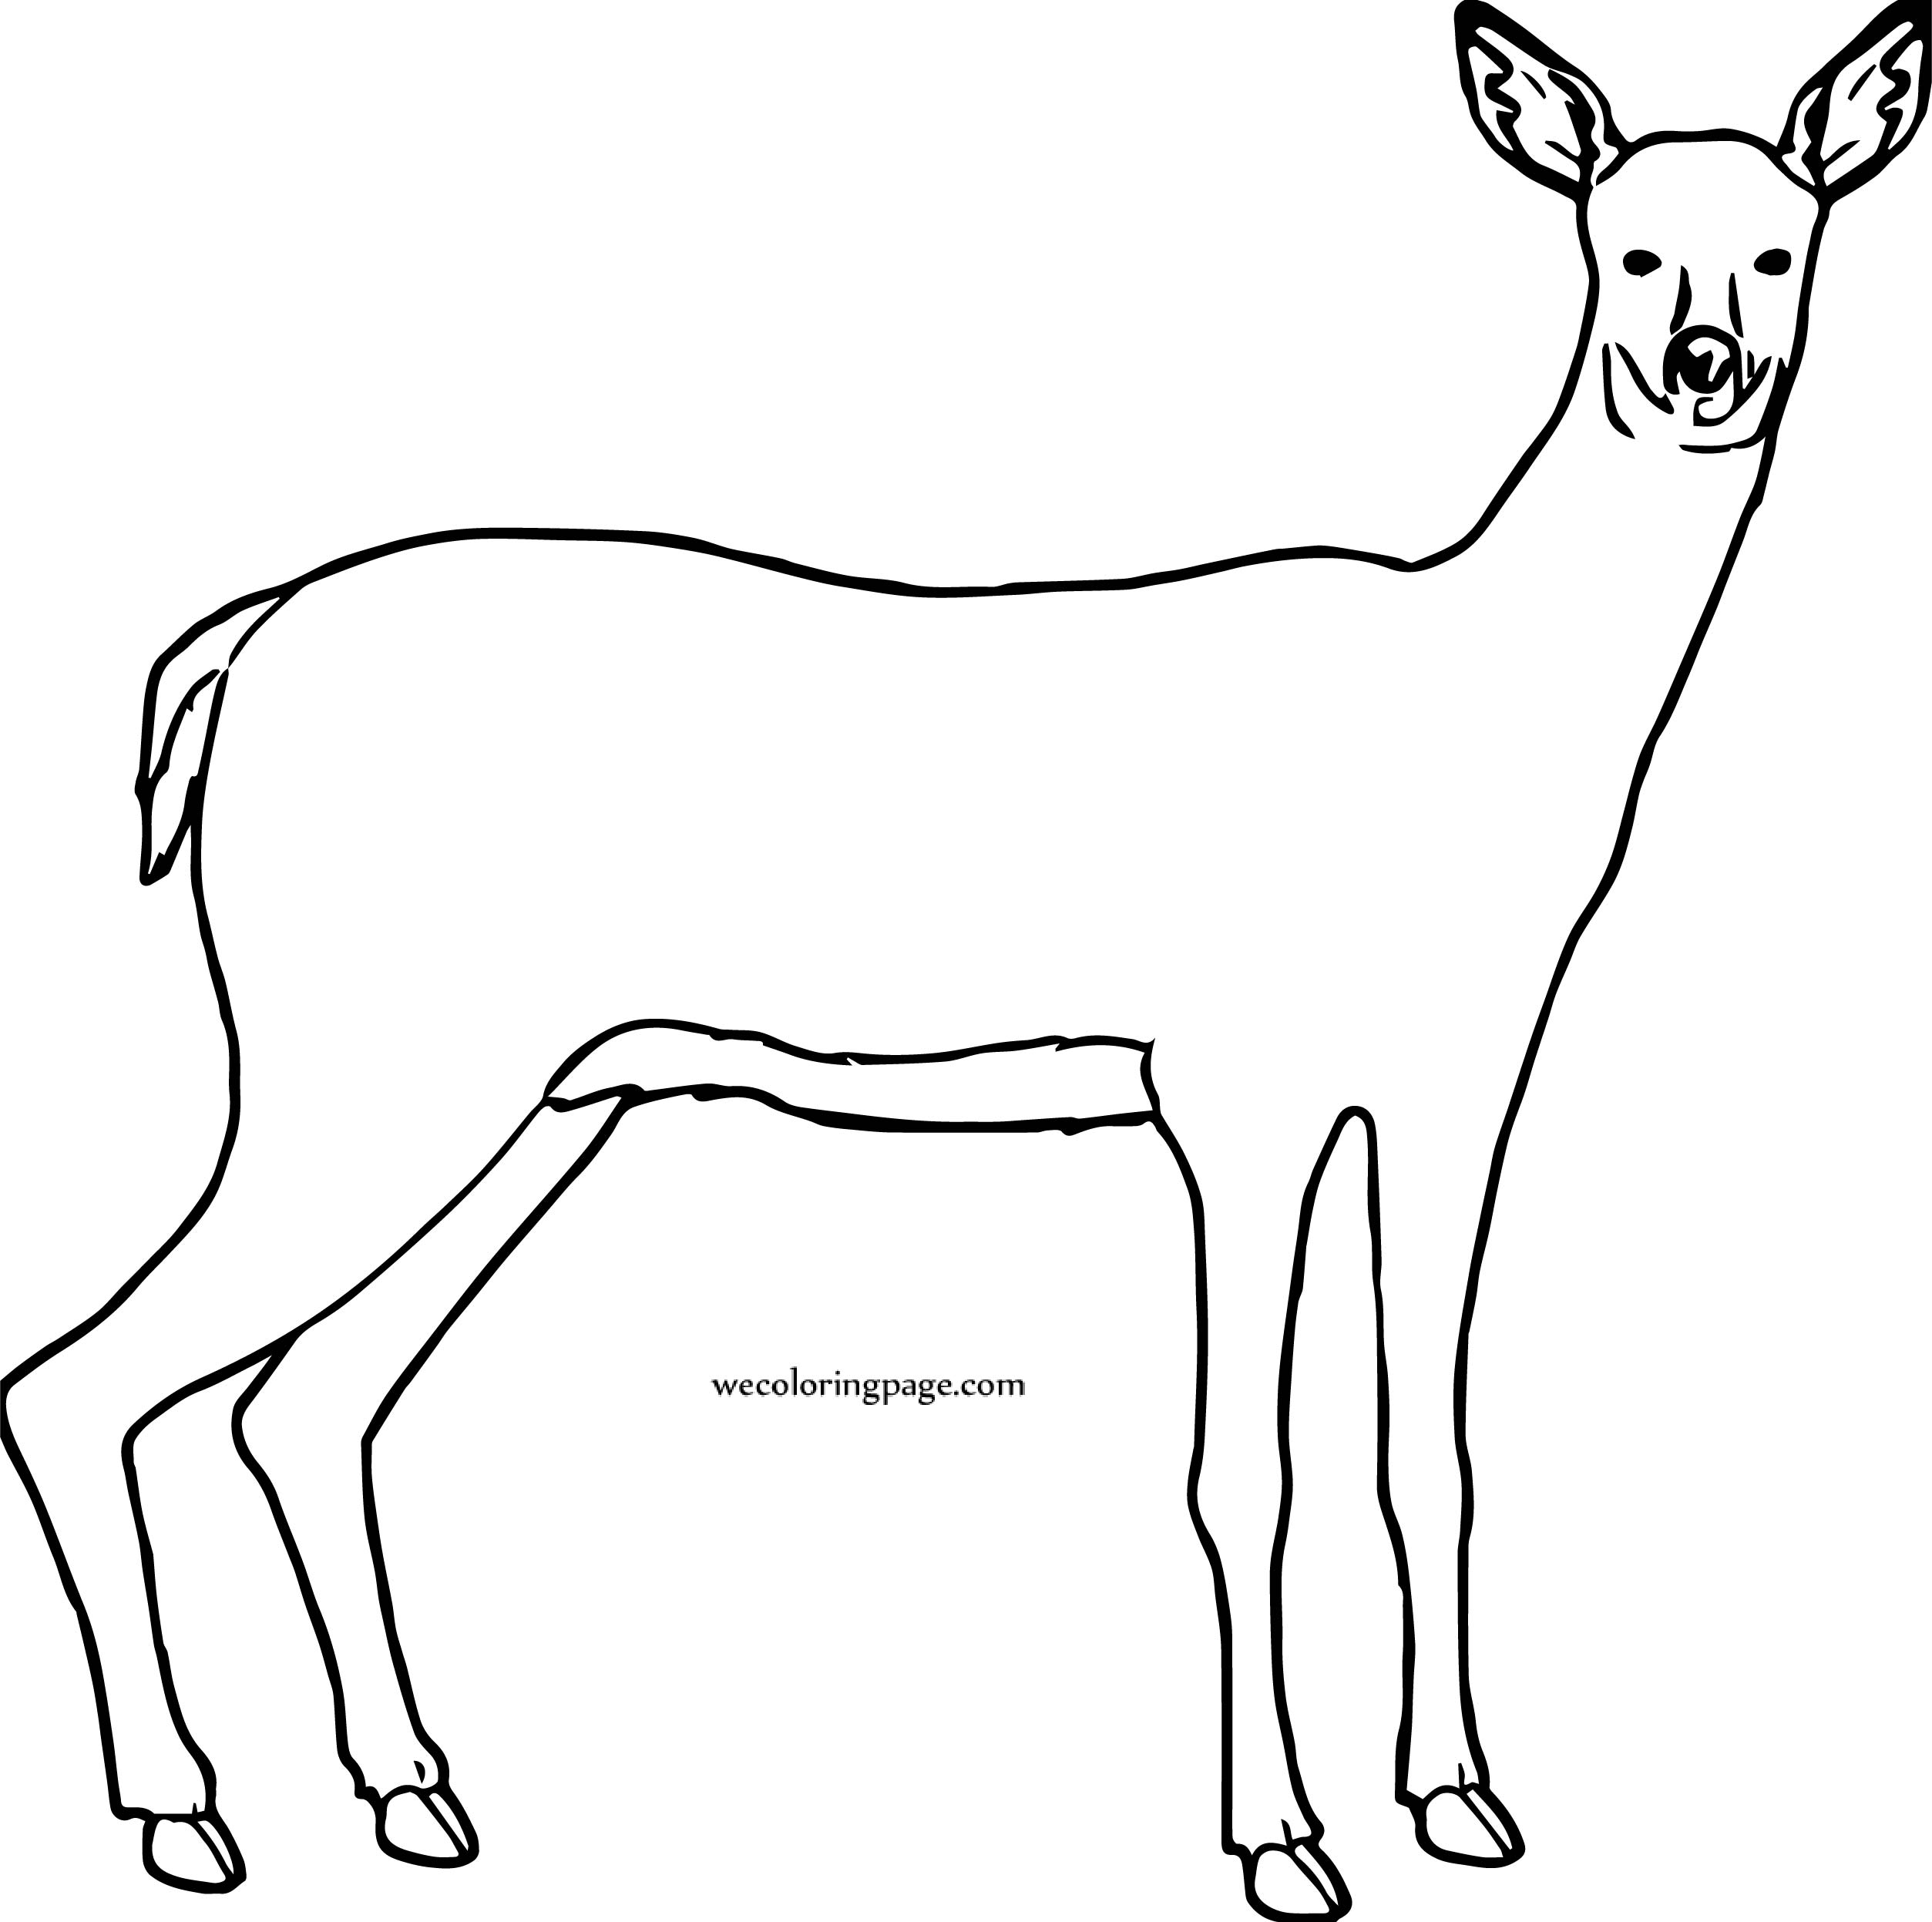 Deer Free To Use Coloring Page